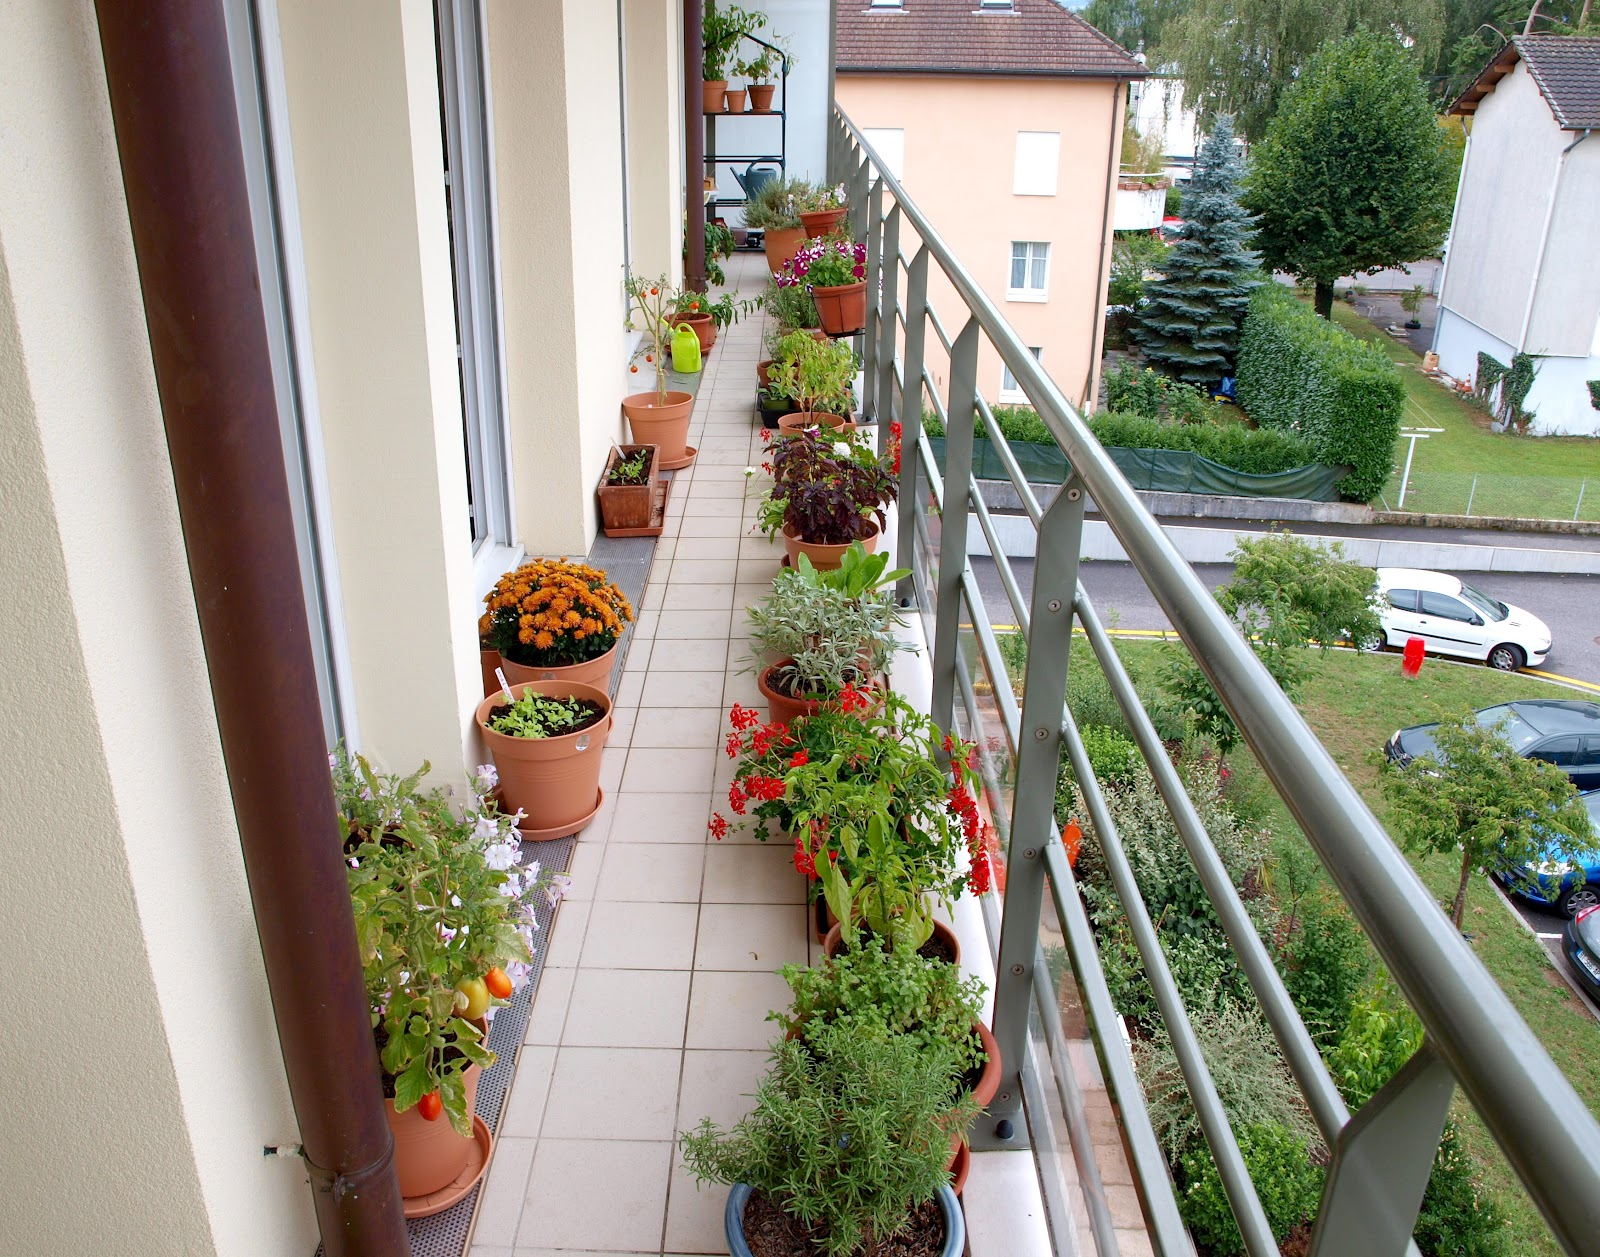 Mark 39 s veg plot fiona 39 s balcony garden for How to decorate terrace with plants